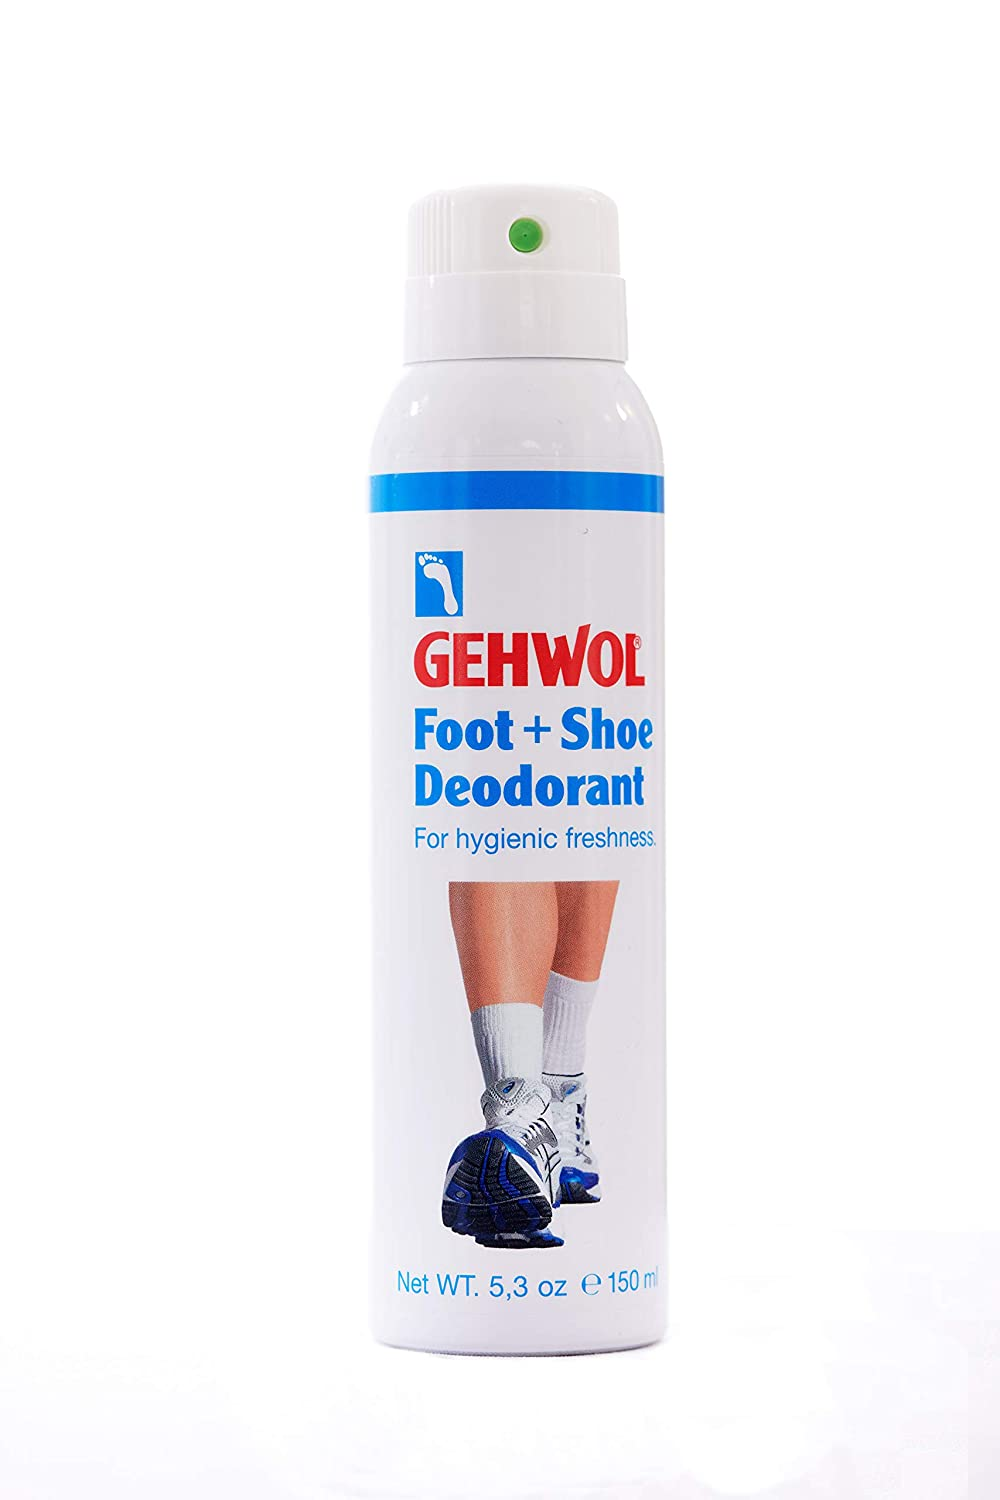 Gehwol Foot And Shoe Deodorant - 5.3 oz 13103